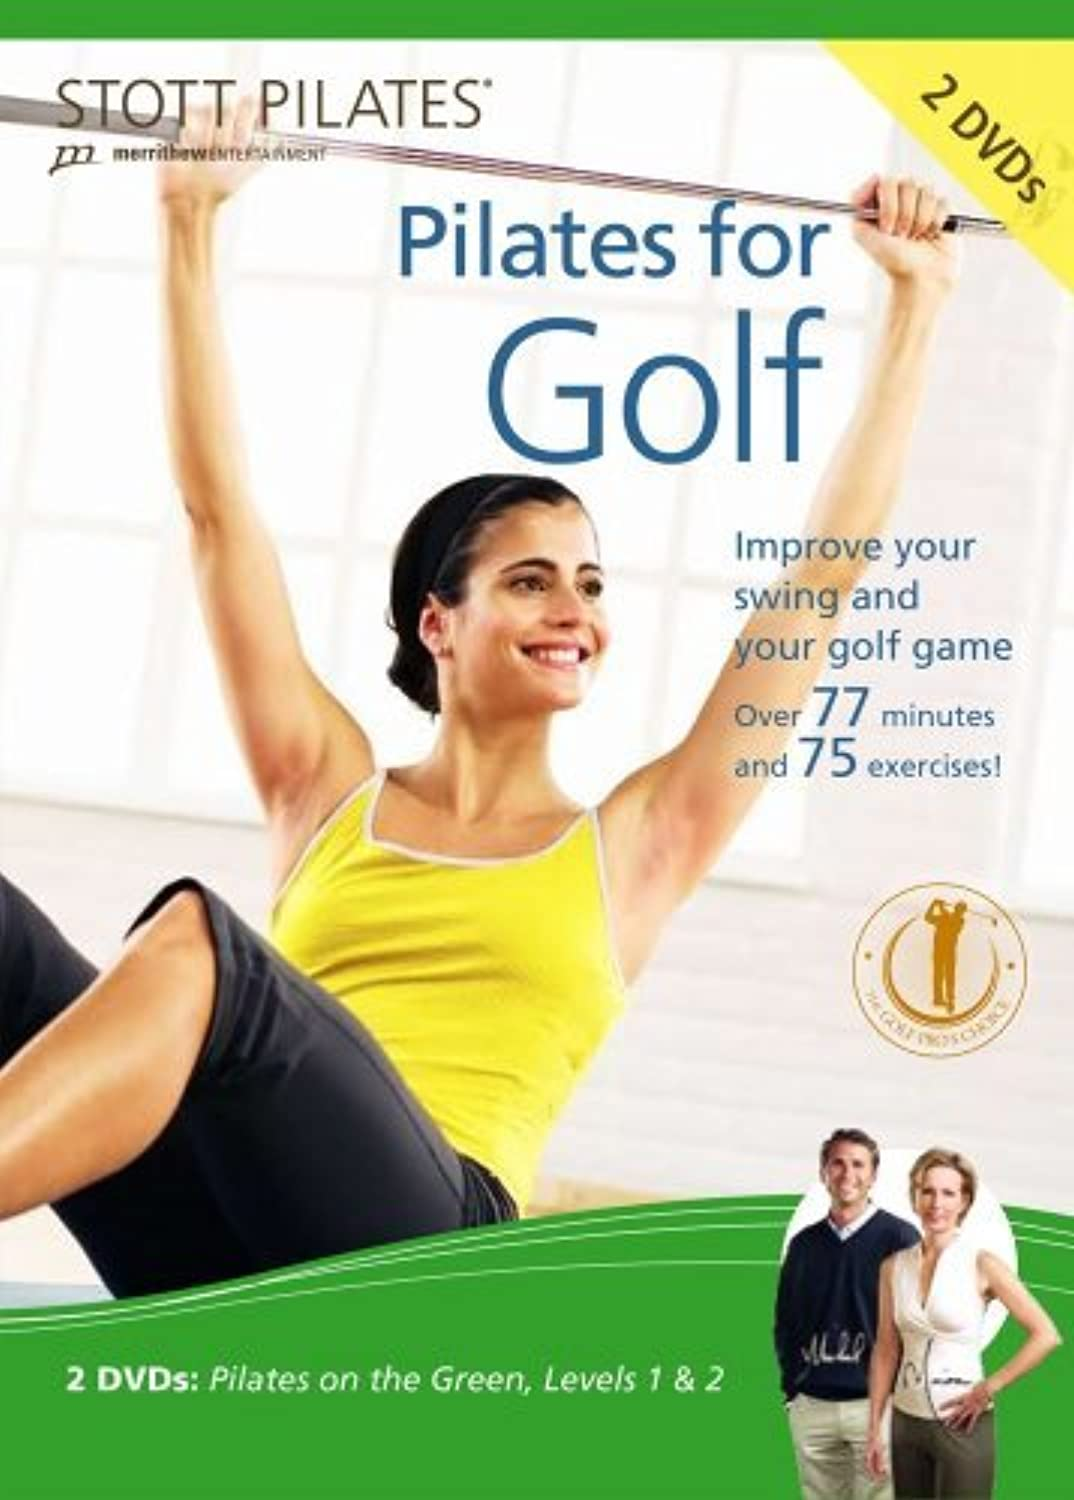 STOTT PILATES Pilates for Golf DVD 2 DVD Set